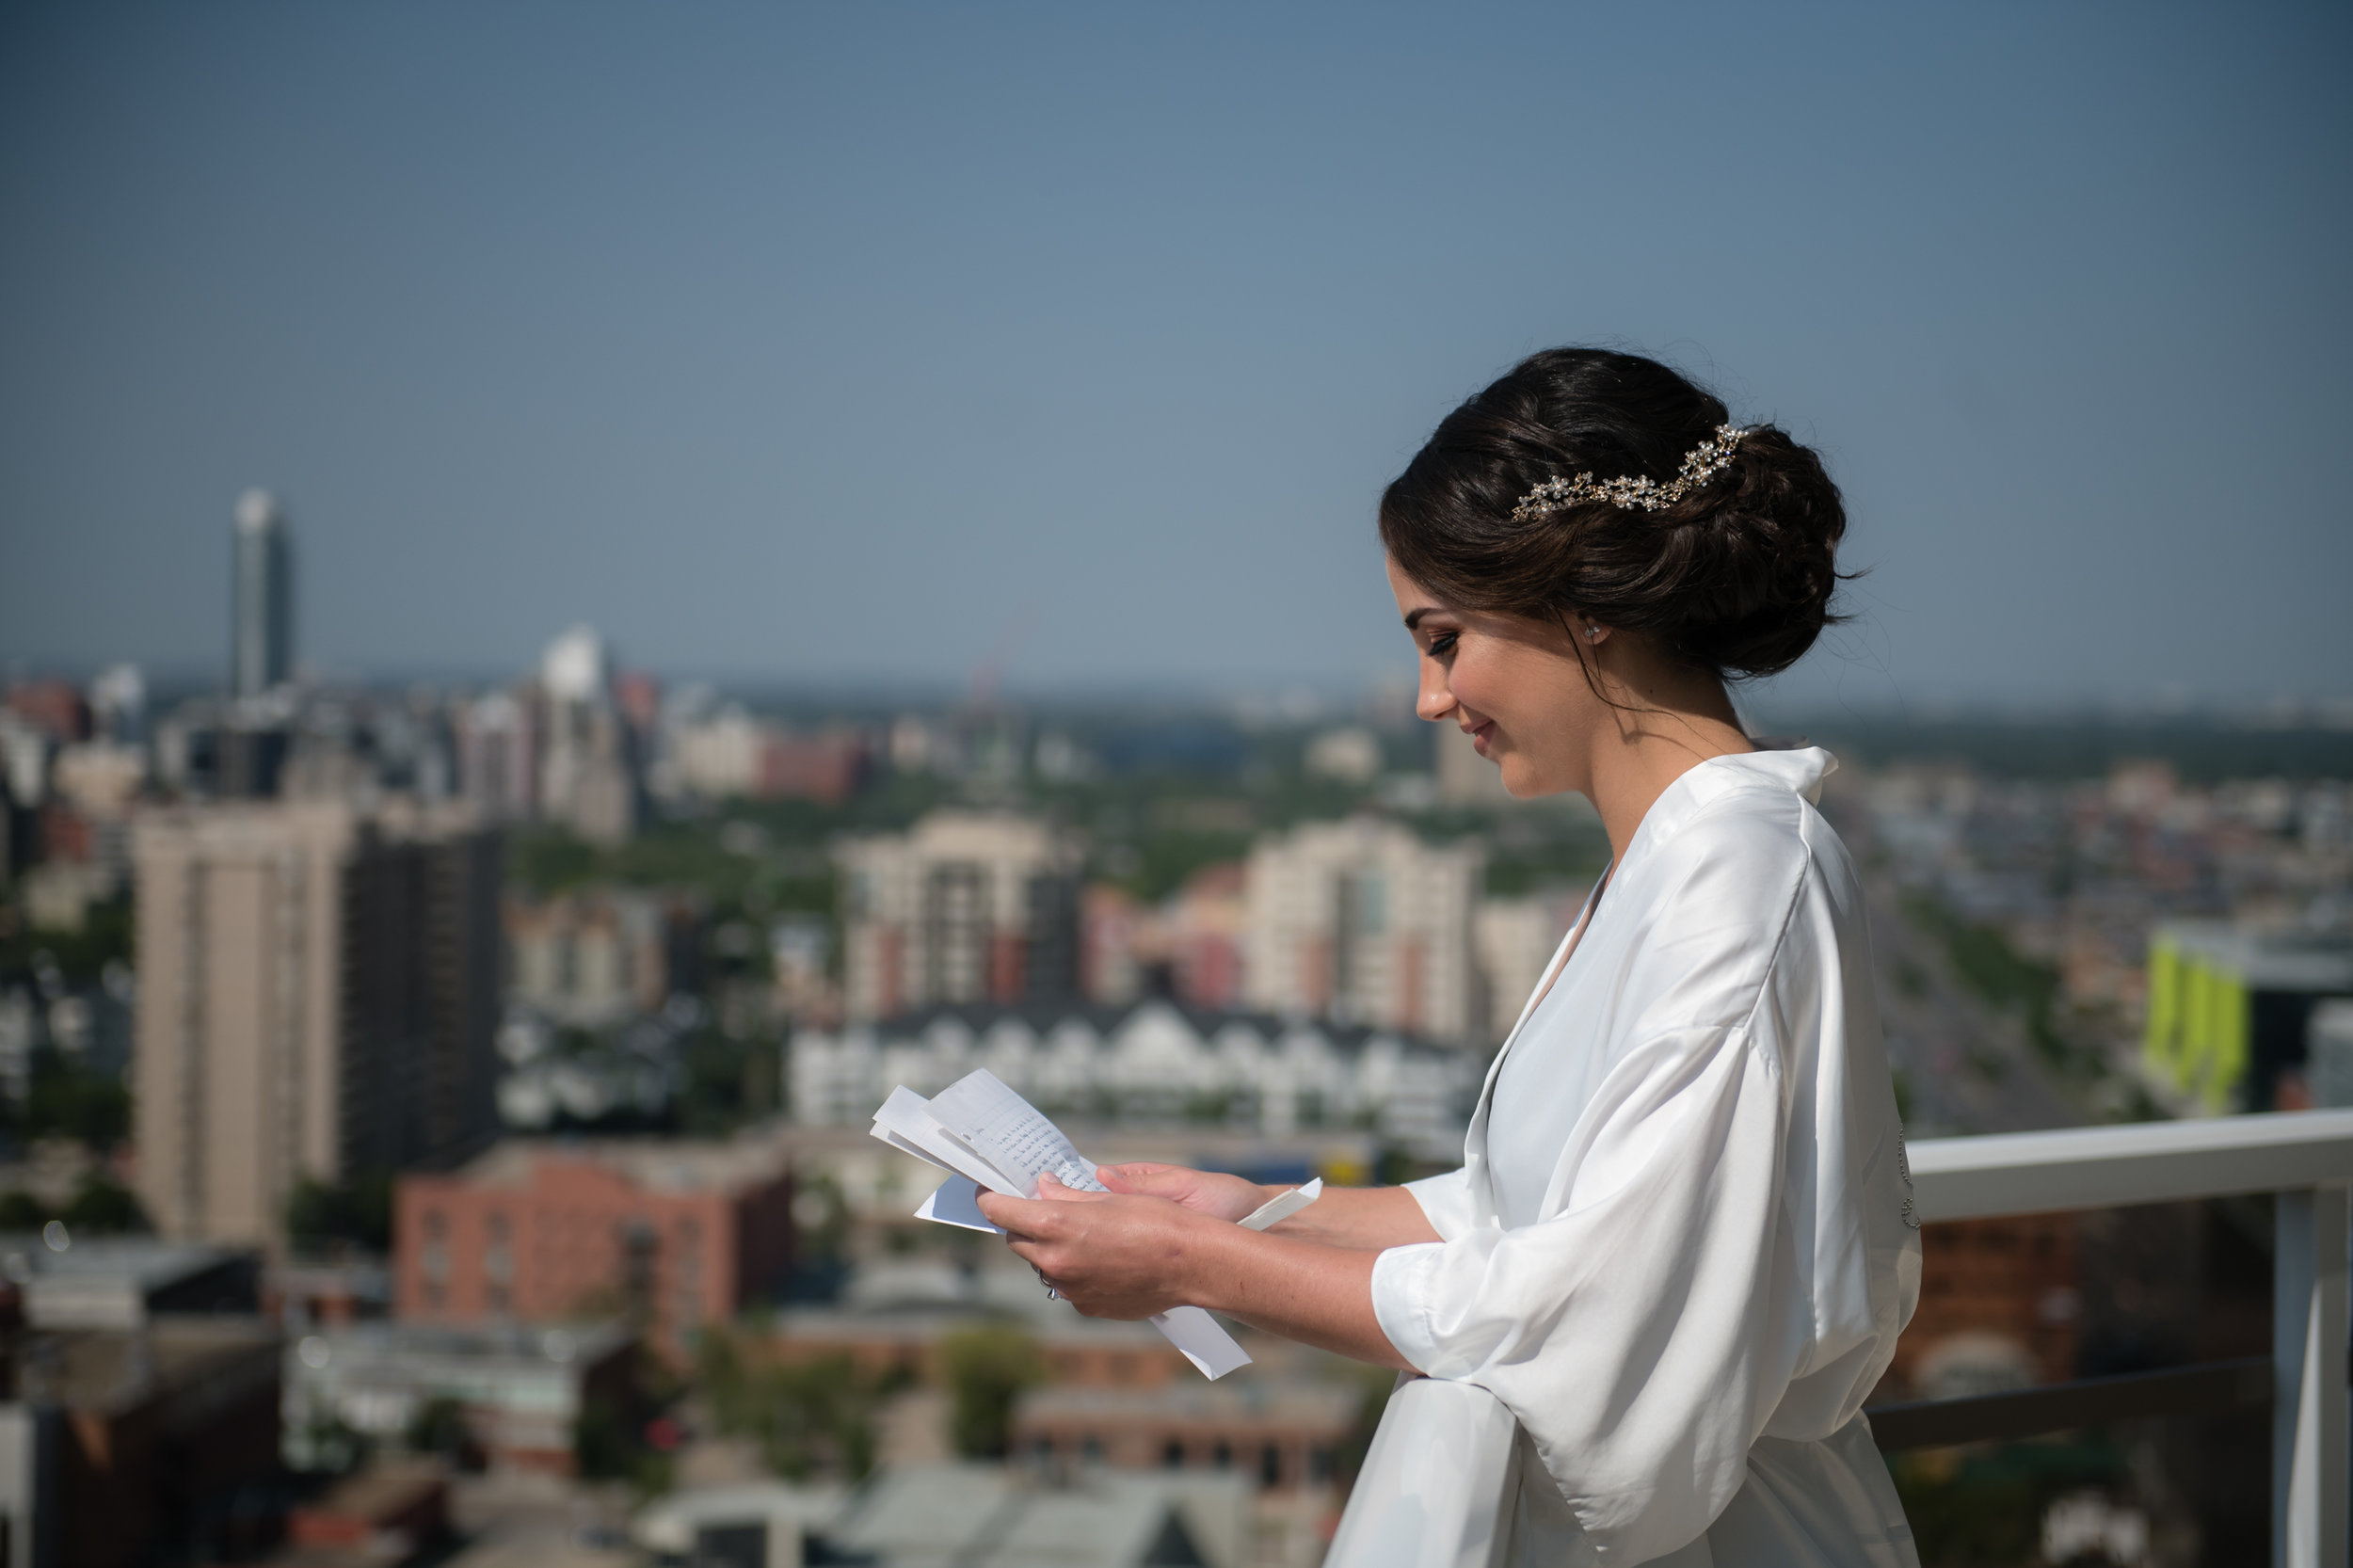 Laura_Danny_Wedding_Sneak_Peek_017.jpg